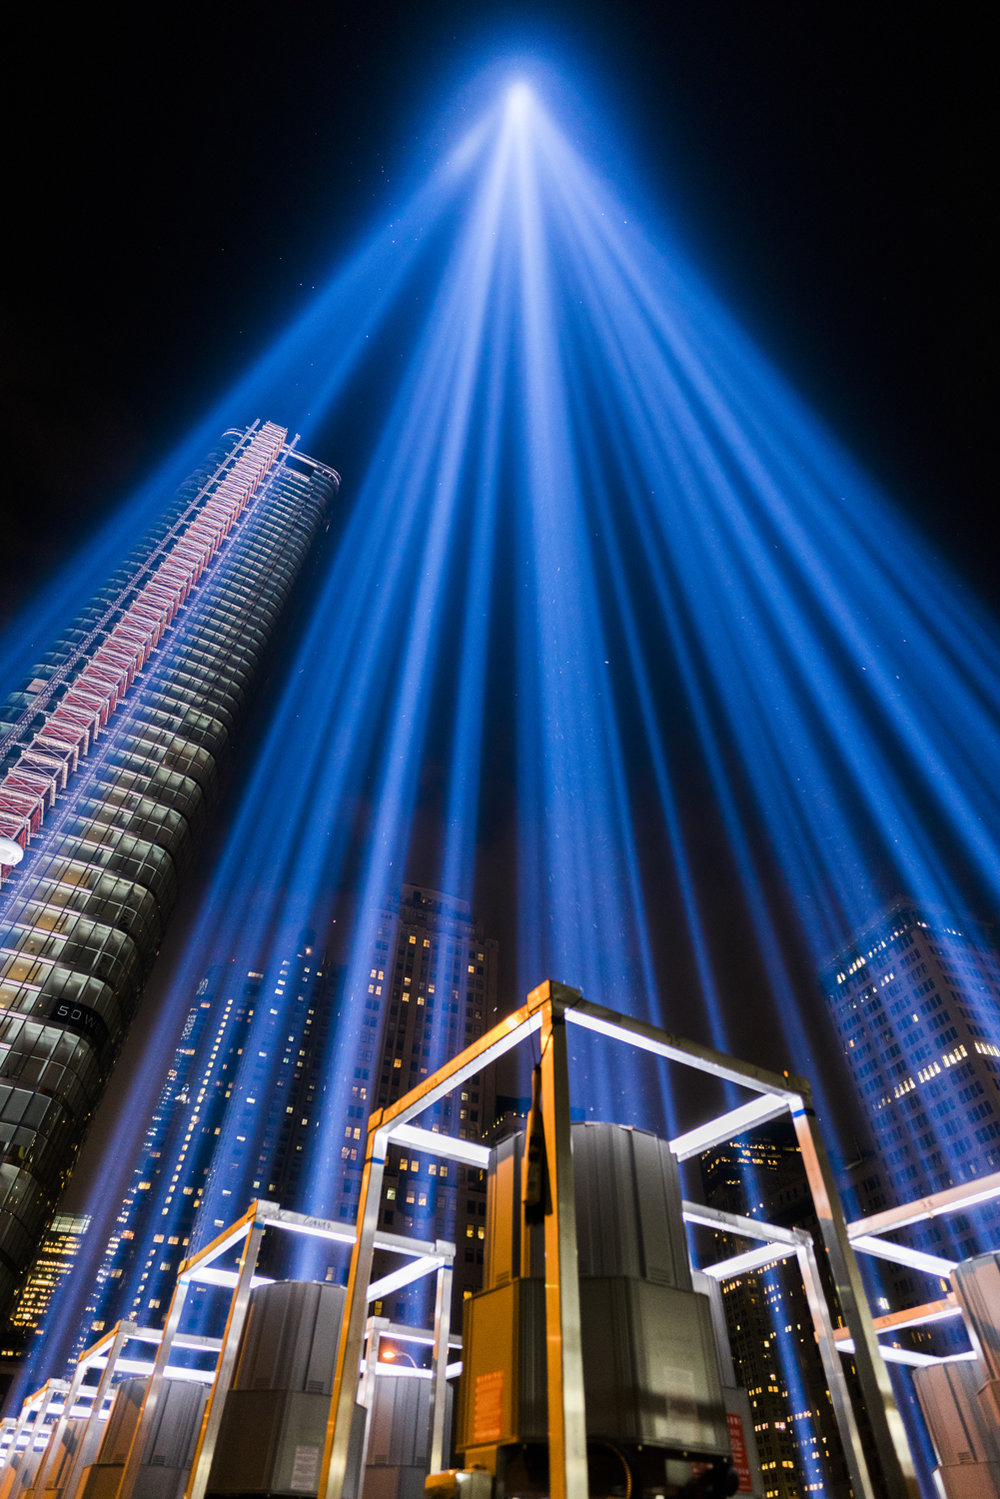 911 tribute lights world trade center austin paz nyc